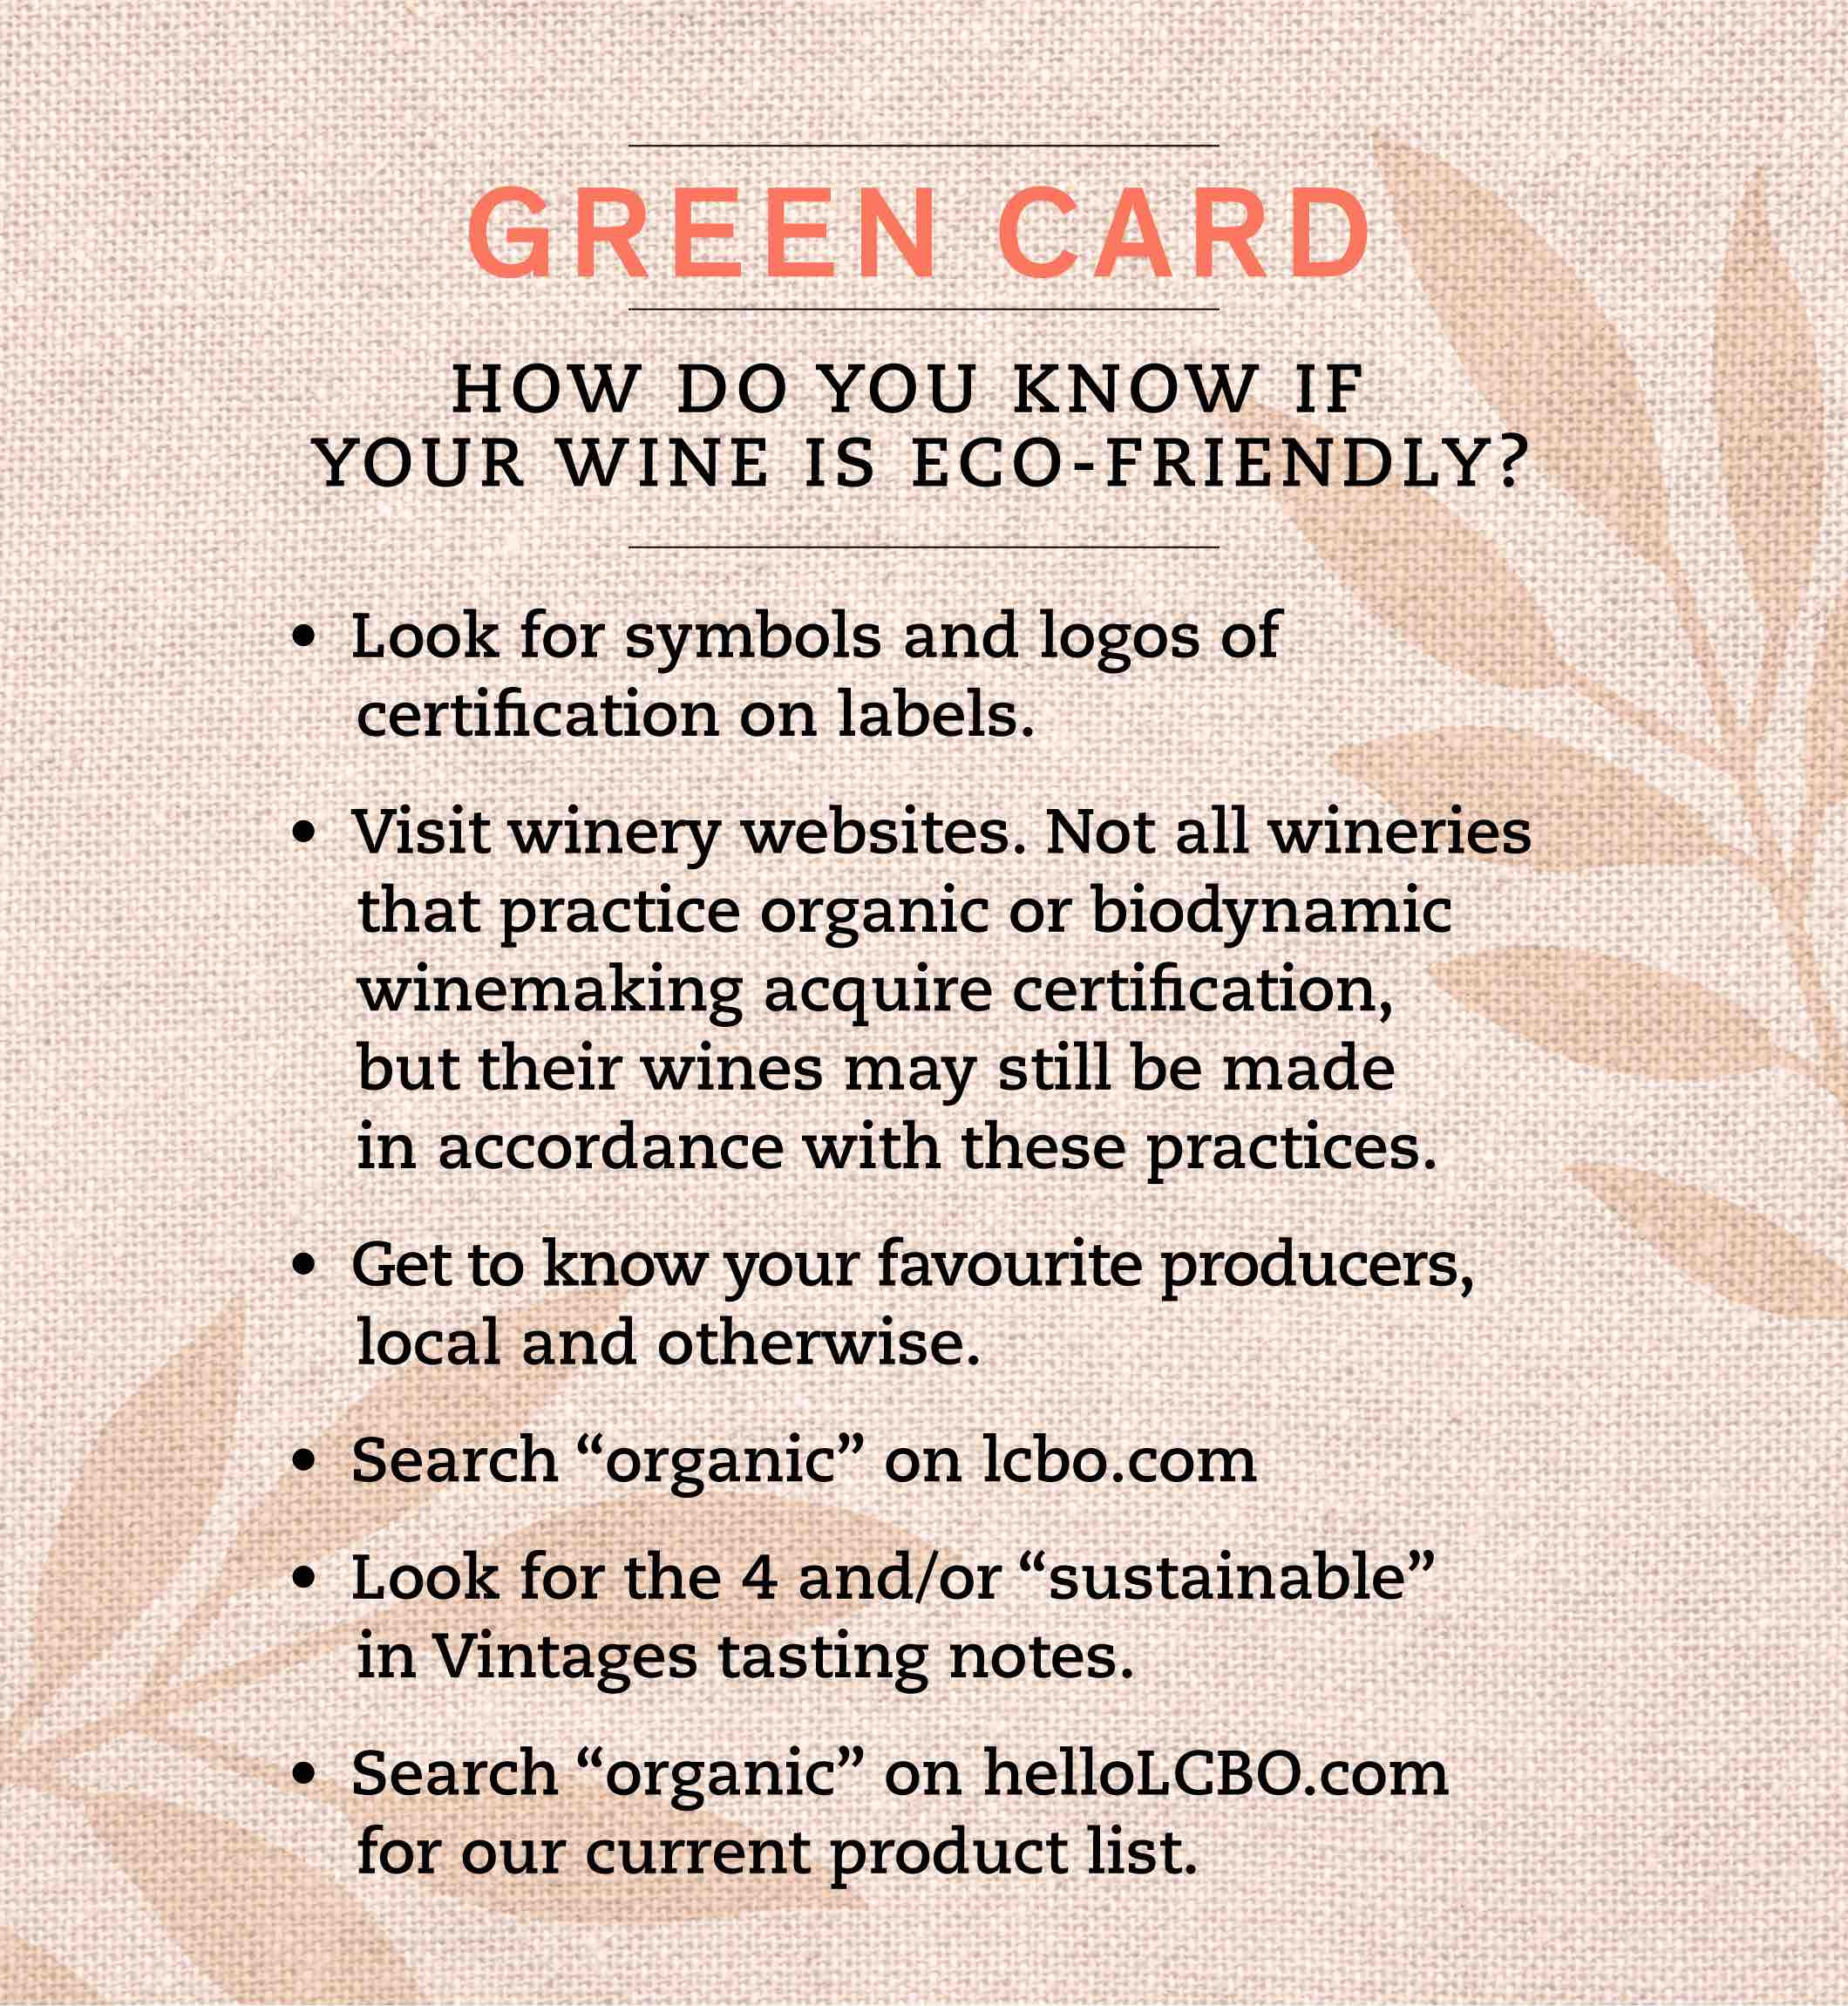 HOW DO YOU KNOW IF YOUR WINE IS ECO-FRIENDLY?